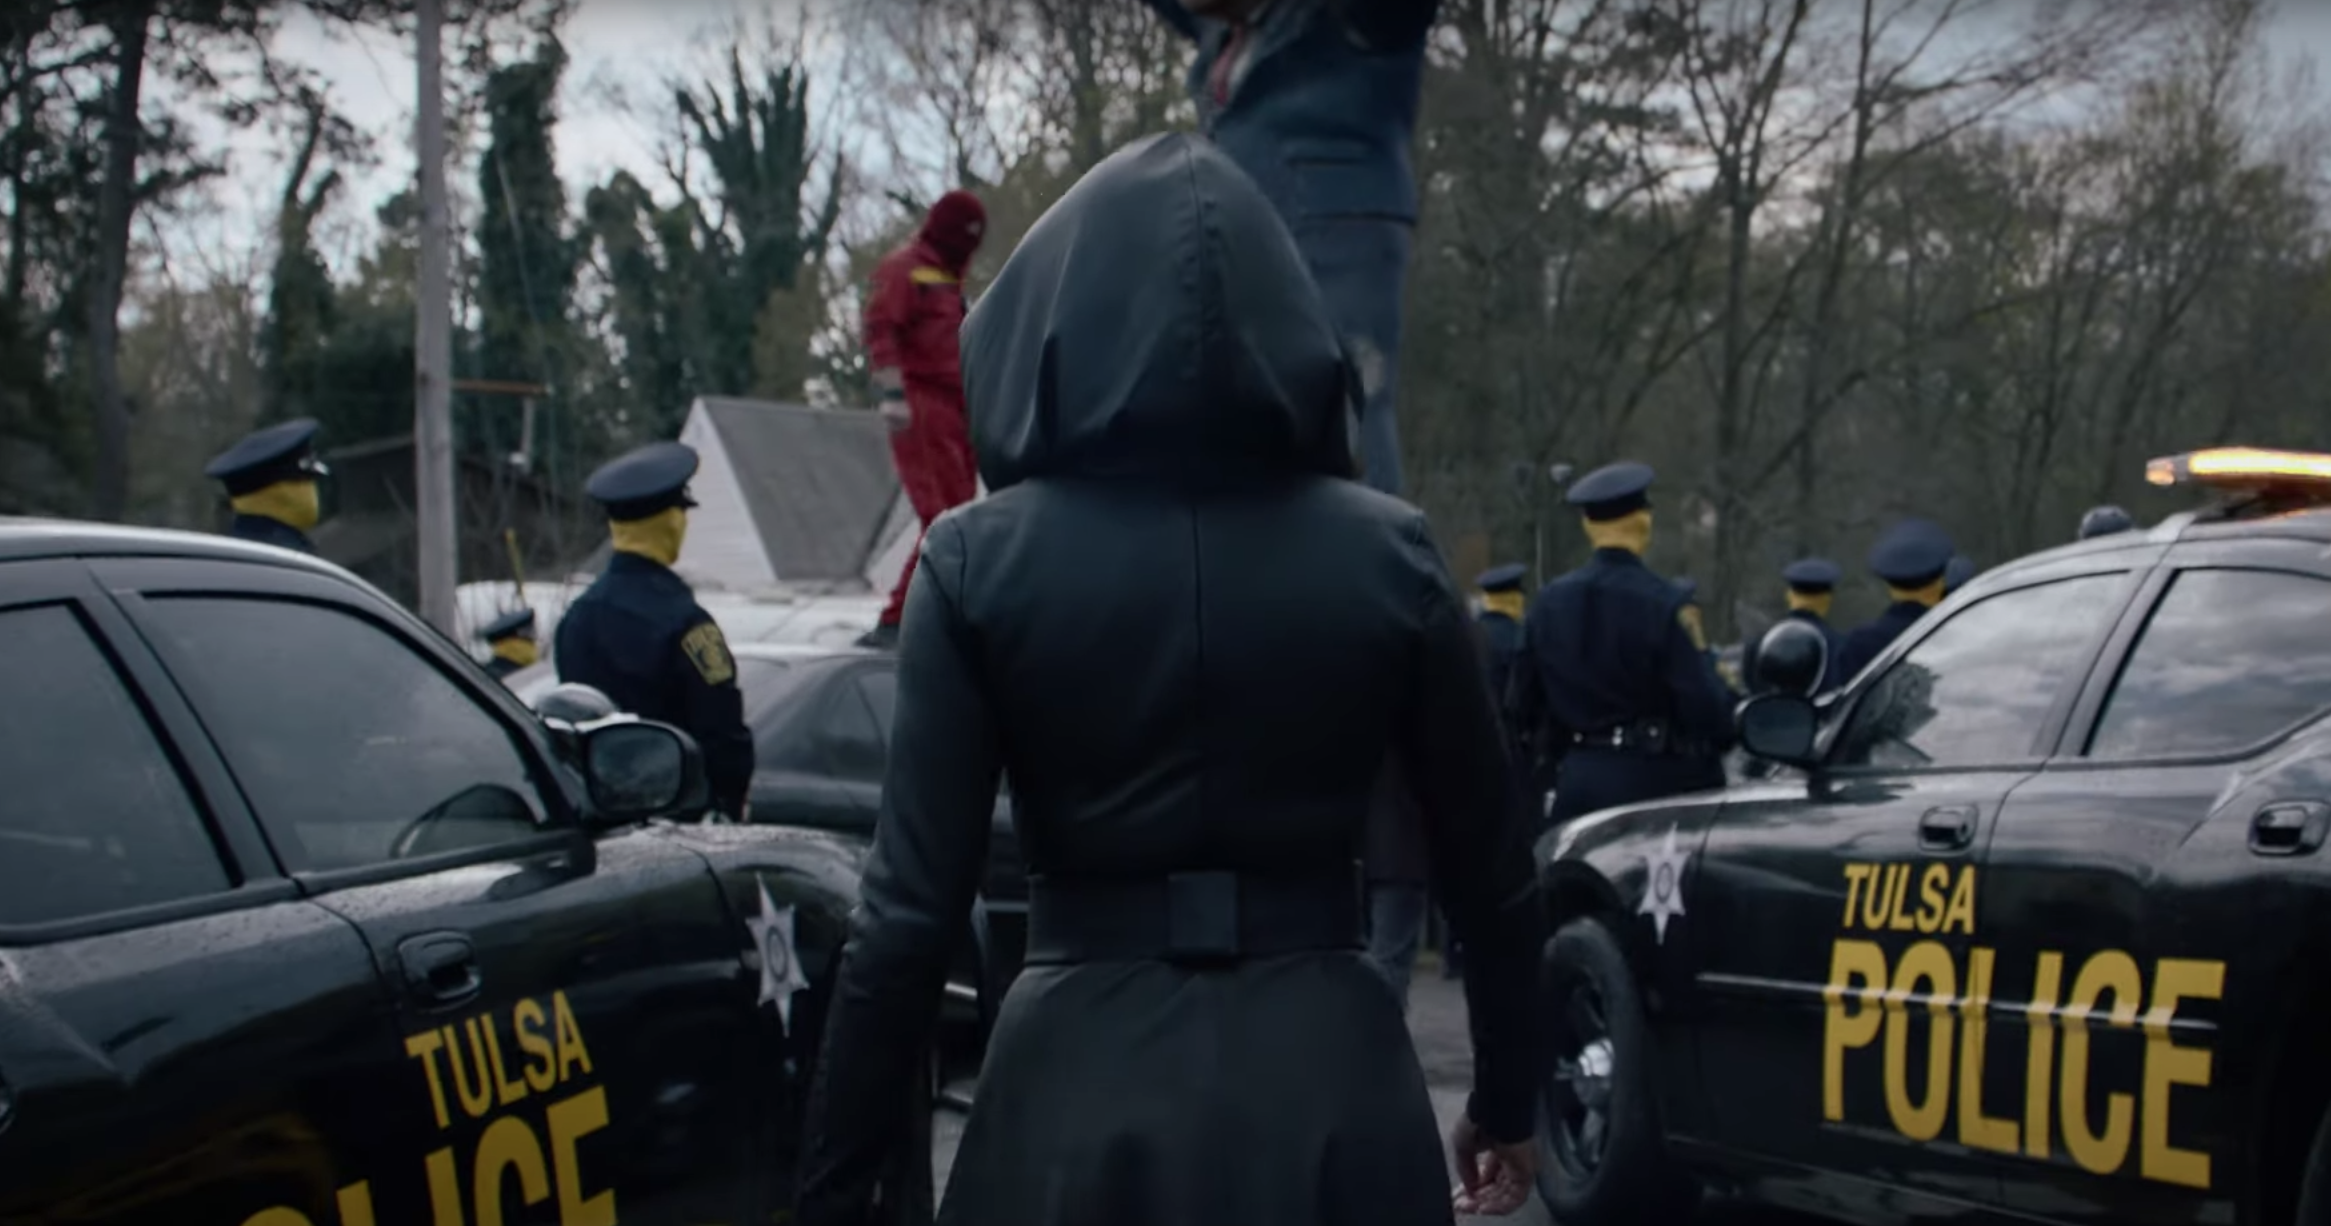 'Watchmen' Trailer: HBO Gives the Clearest Look Yet at What's at Stake in New Adaptation